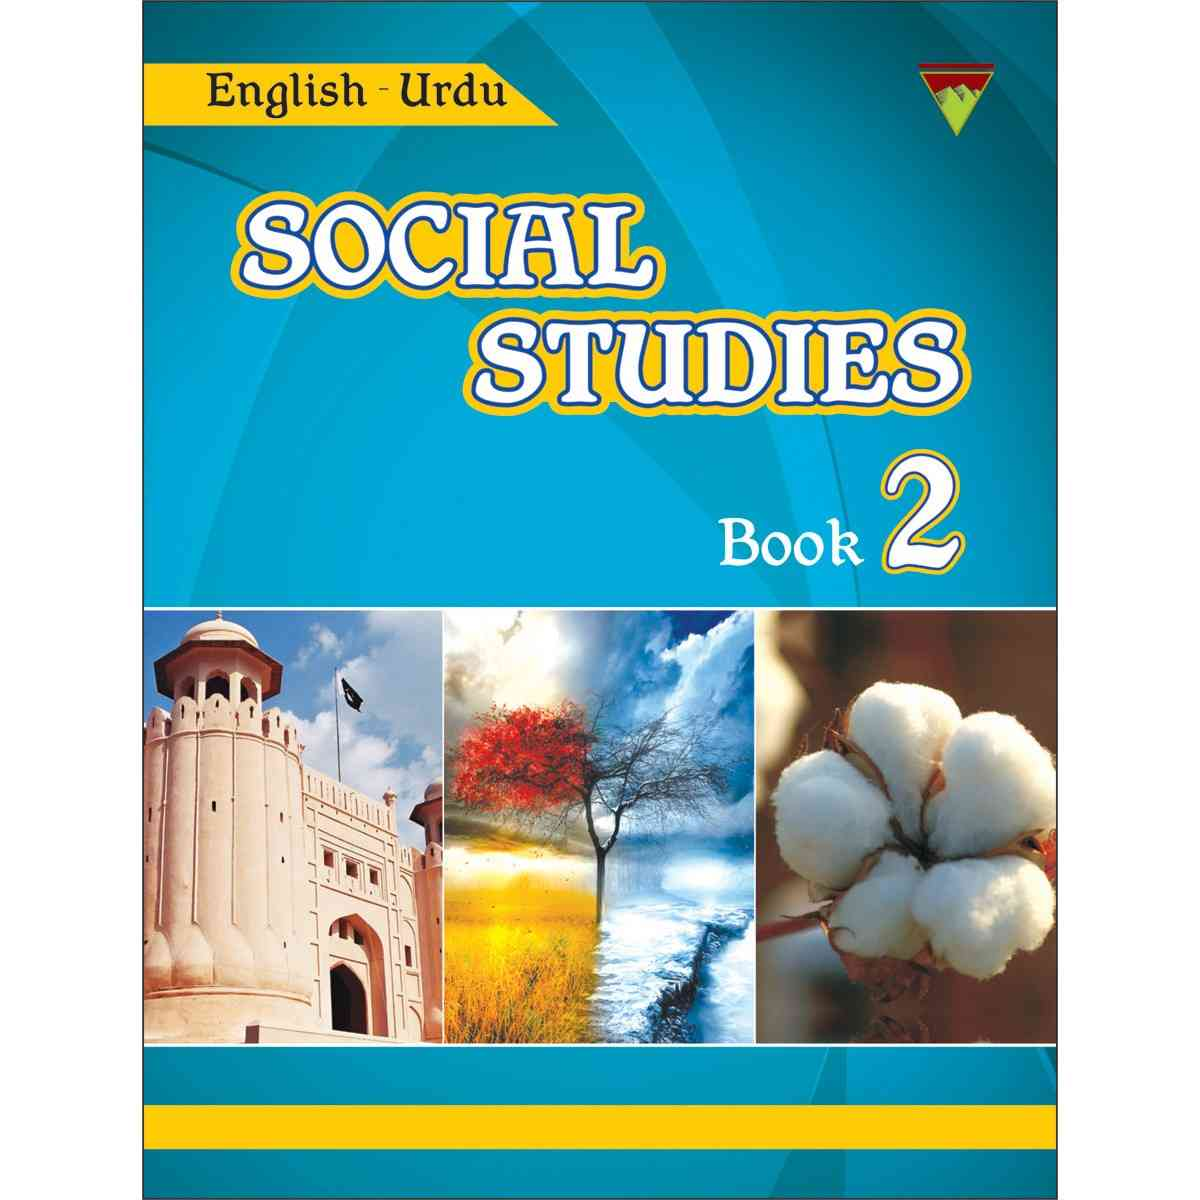 TOP LINE PUBLISHERS Social Studies Book 2 EngUrdu